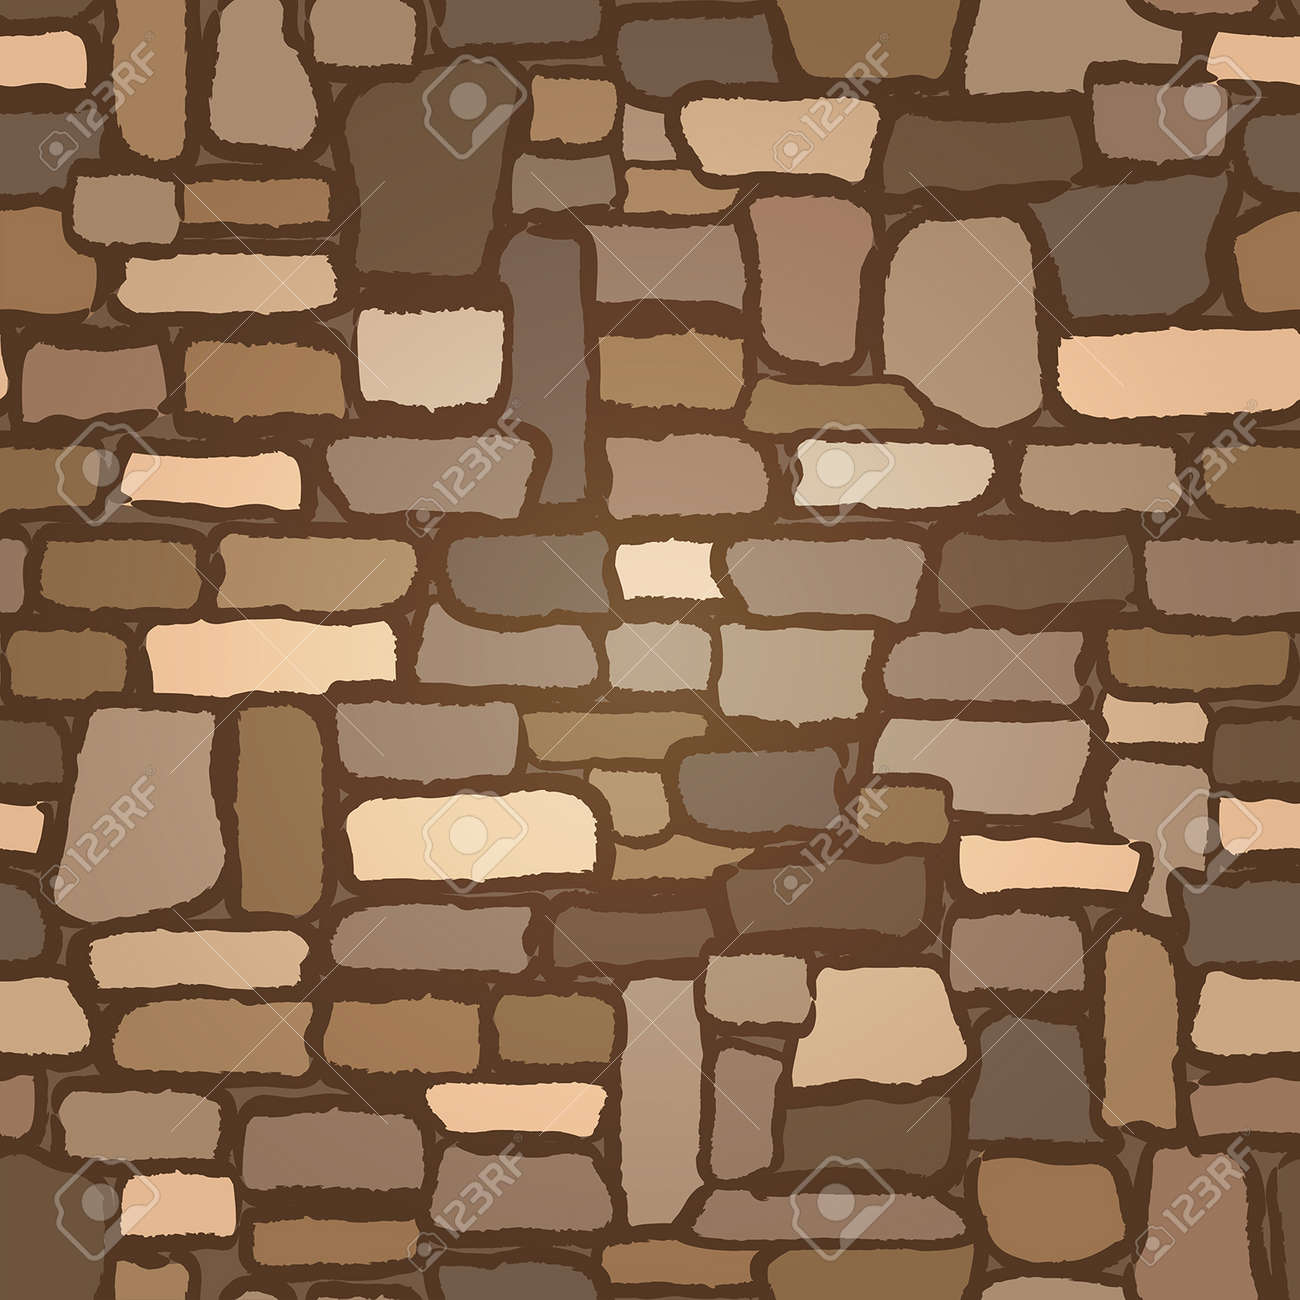 Stone Castle Wall background seamless , vector illustration - 168222461